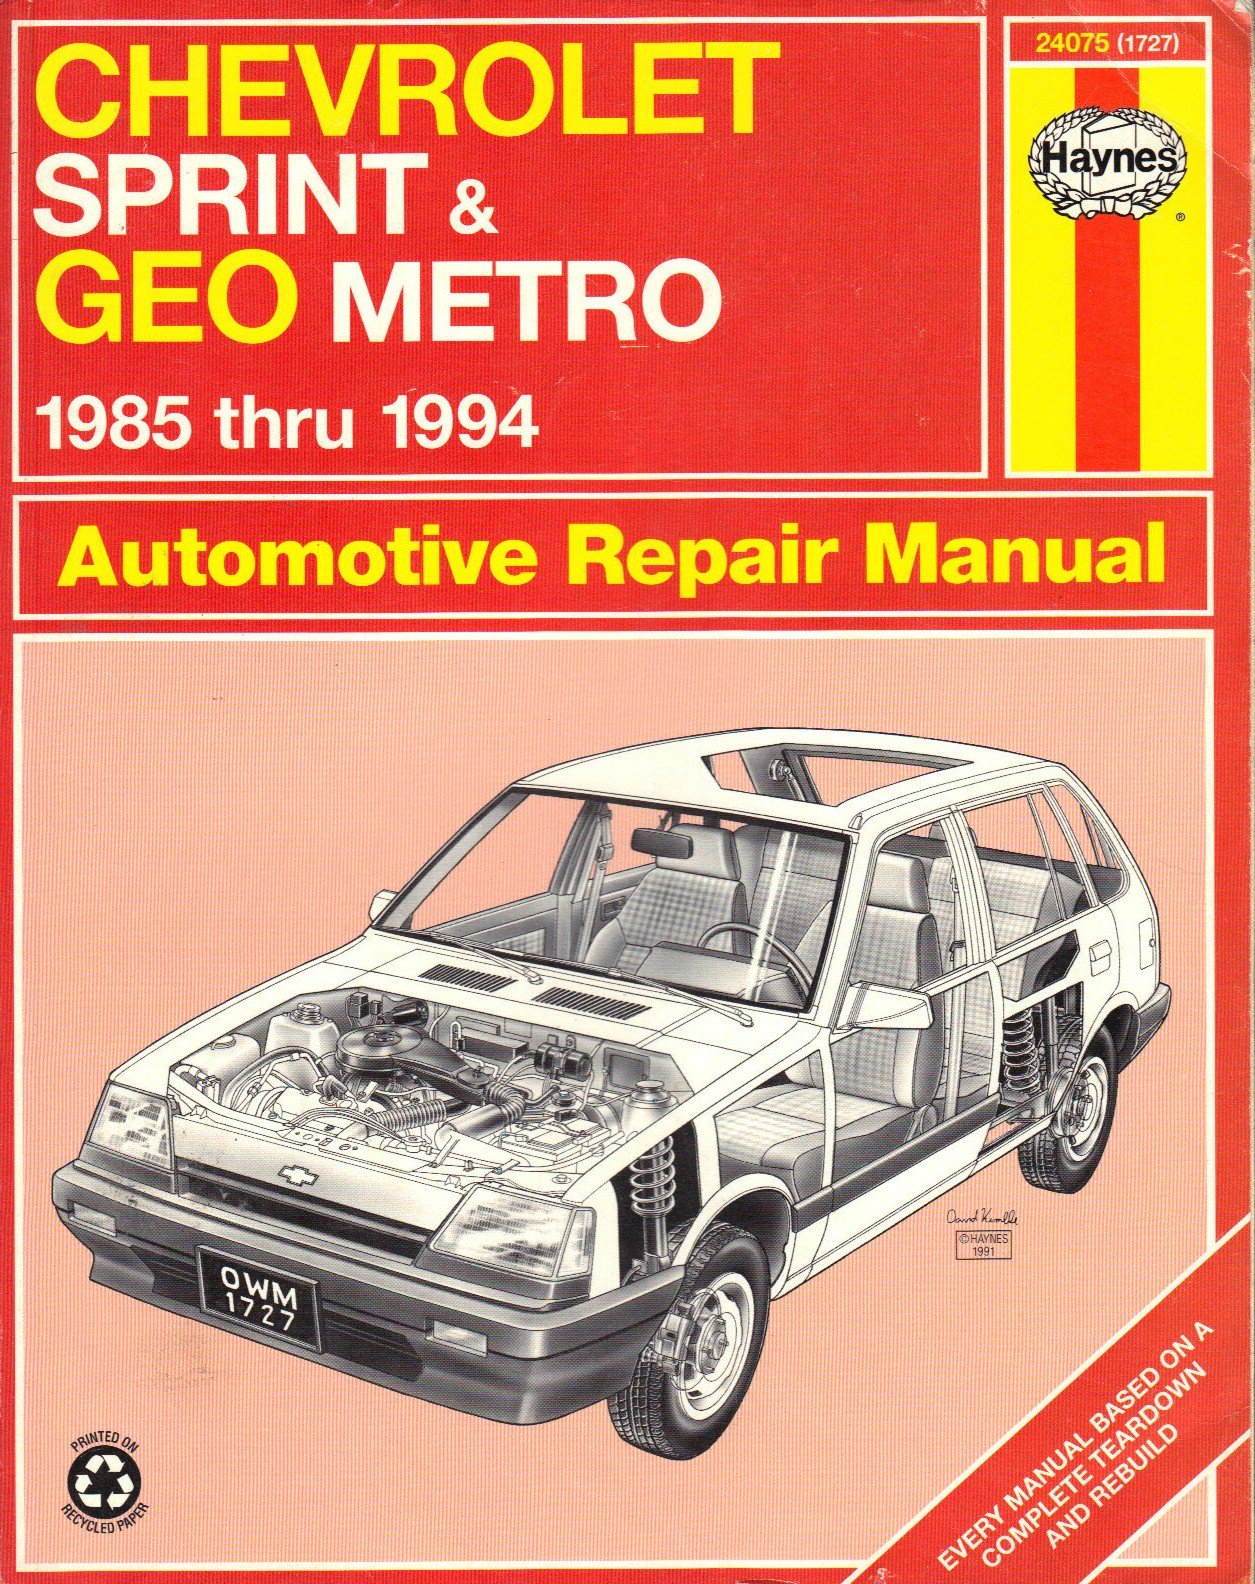 chevrolet sprint geo metro automotive repair manual 1985 thru 1994 rh  amazon com 1991 geo metro repair manual 1991 geo tracker repair manual